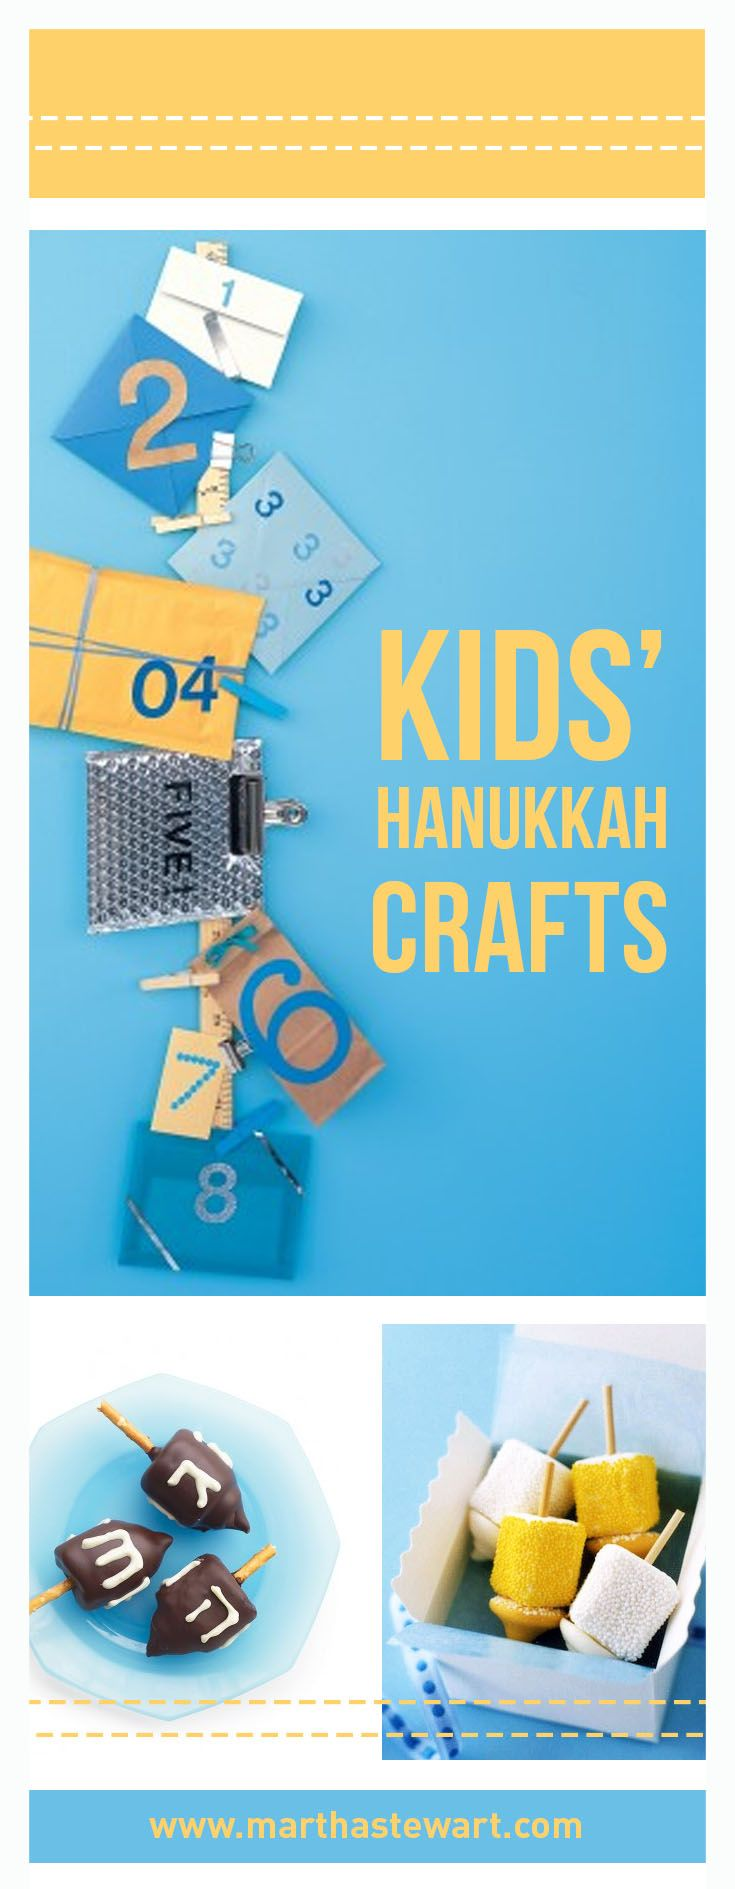 95 best hanukkah recipes and crafts images on pinterest hanukkah hanukkah crafts for kids buycottarizona Images